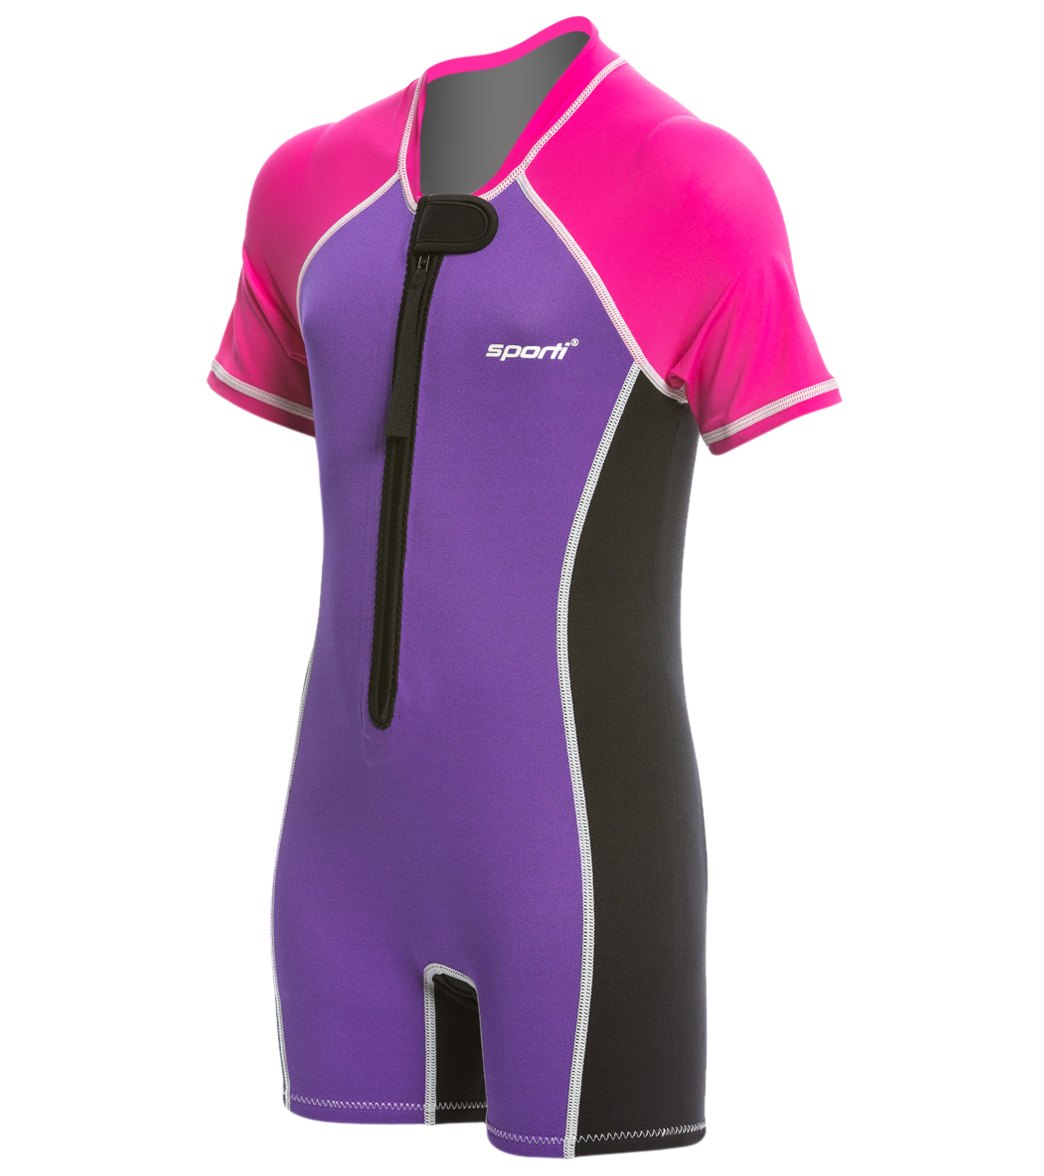 7395c18688 Sporti Kid s UPF 50+ Short Sleeve Solid Thermal Suit at SwimOutlet.com